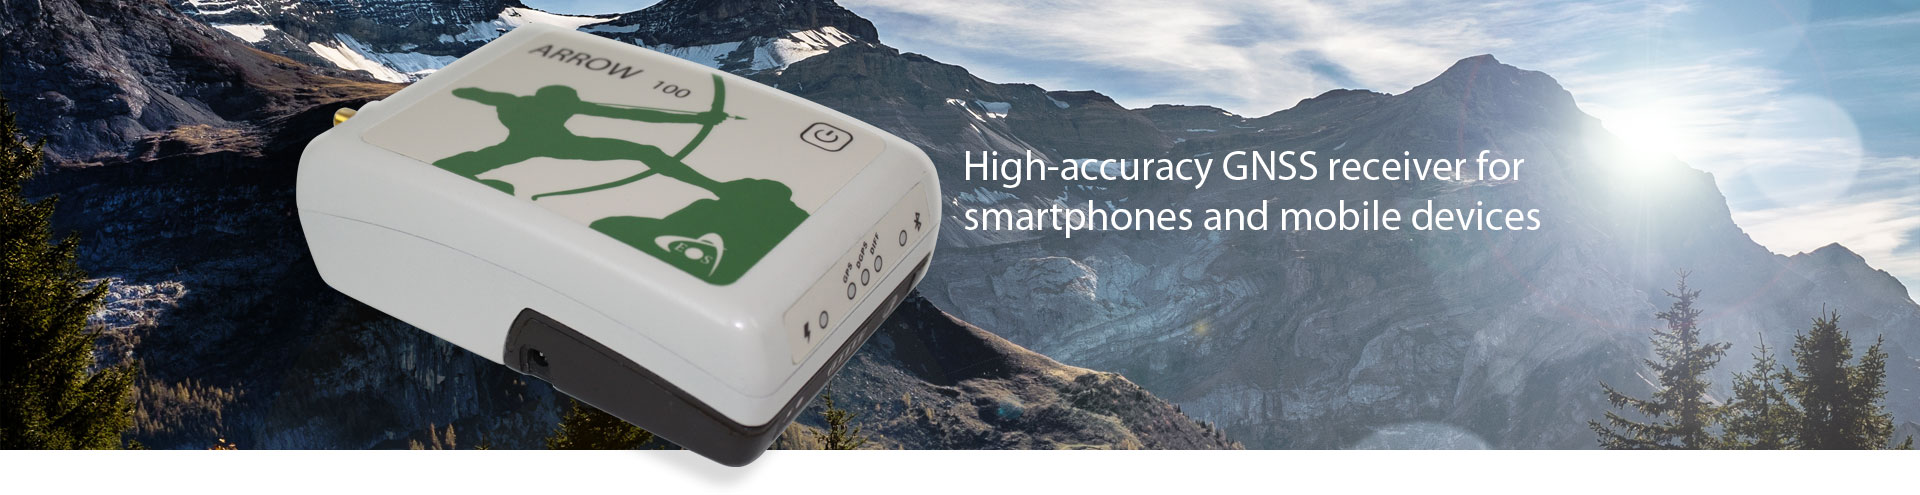 High accuracy GNSS receiver for smartphones and mobile devices